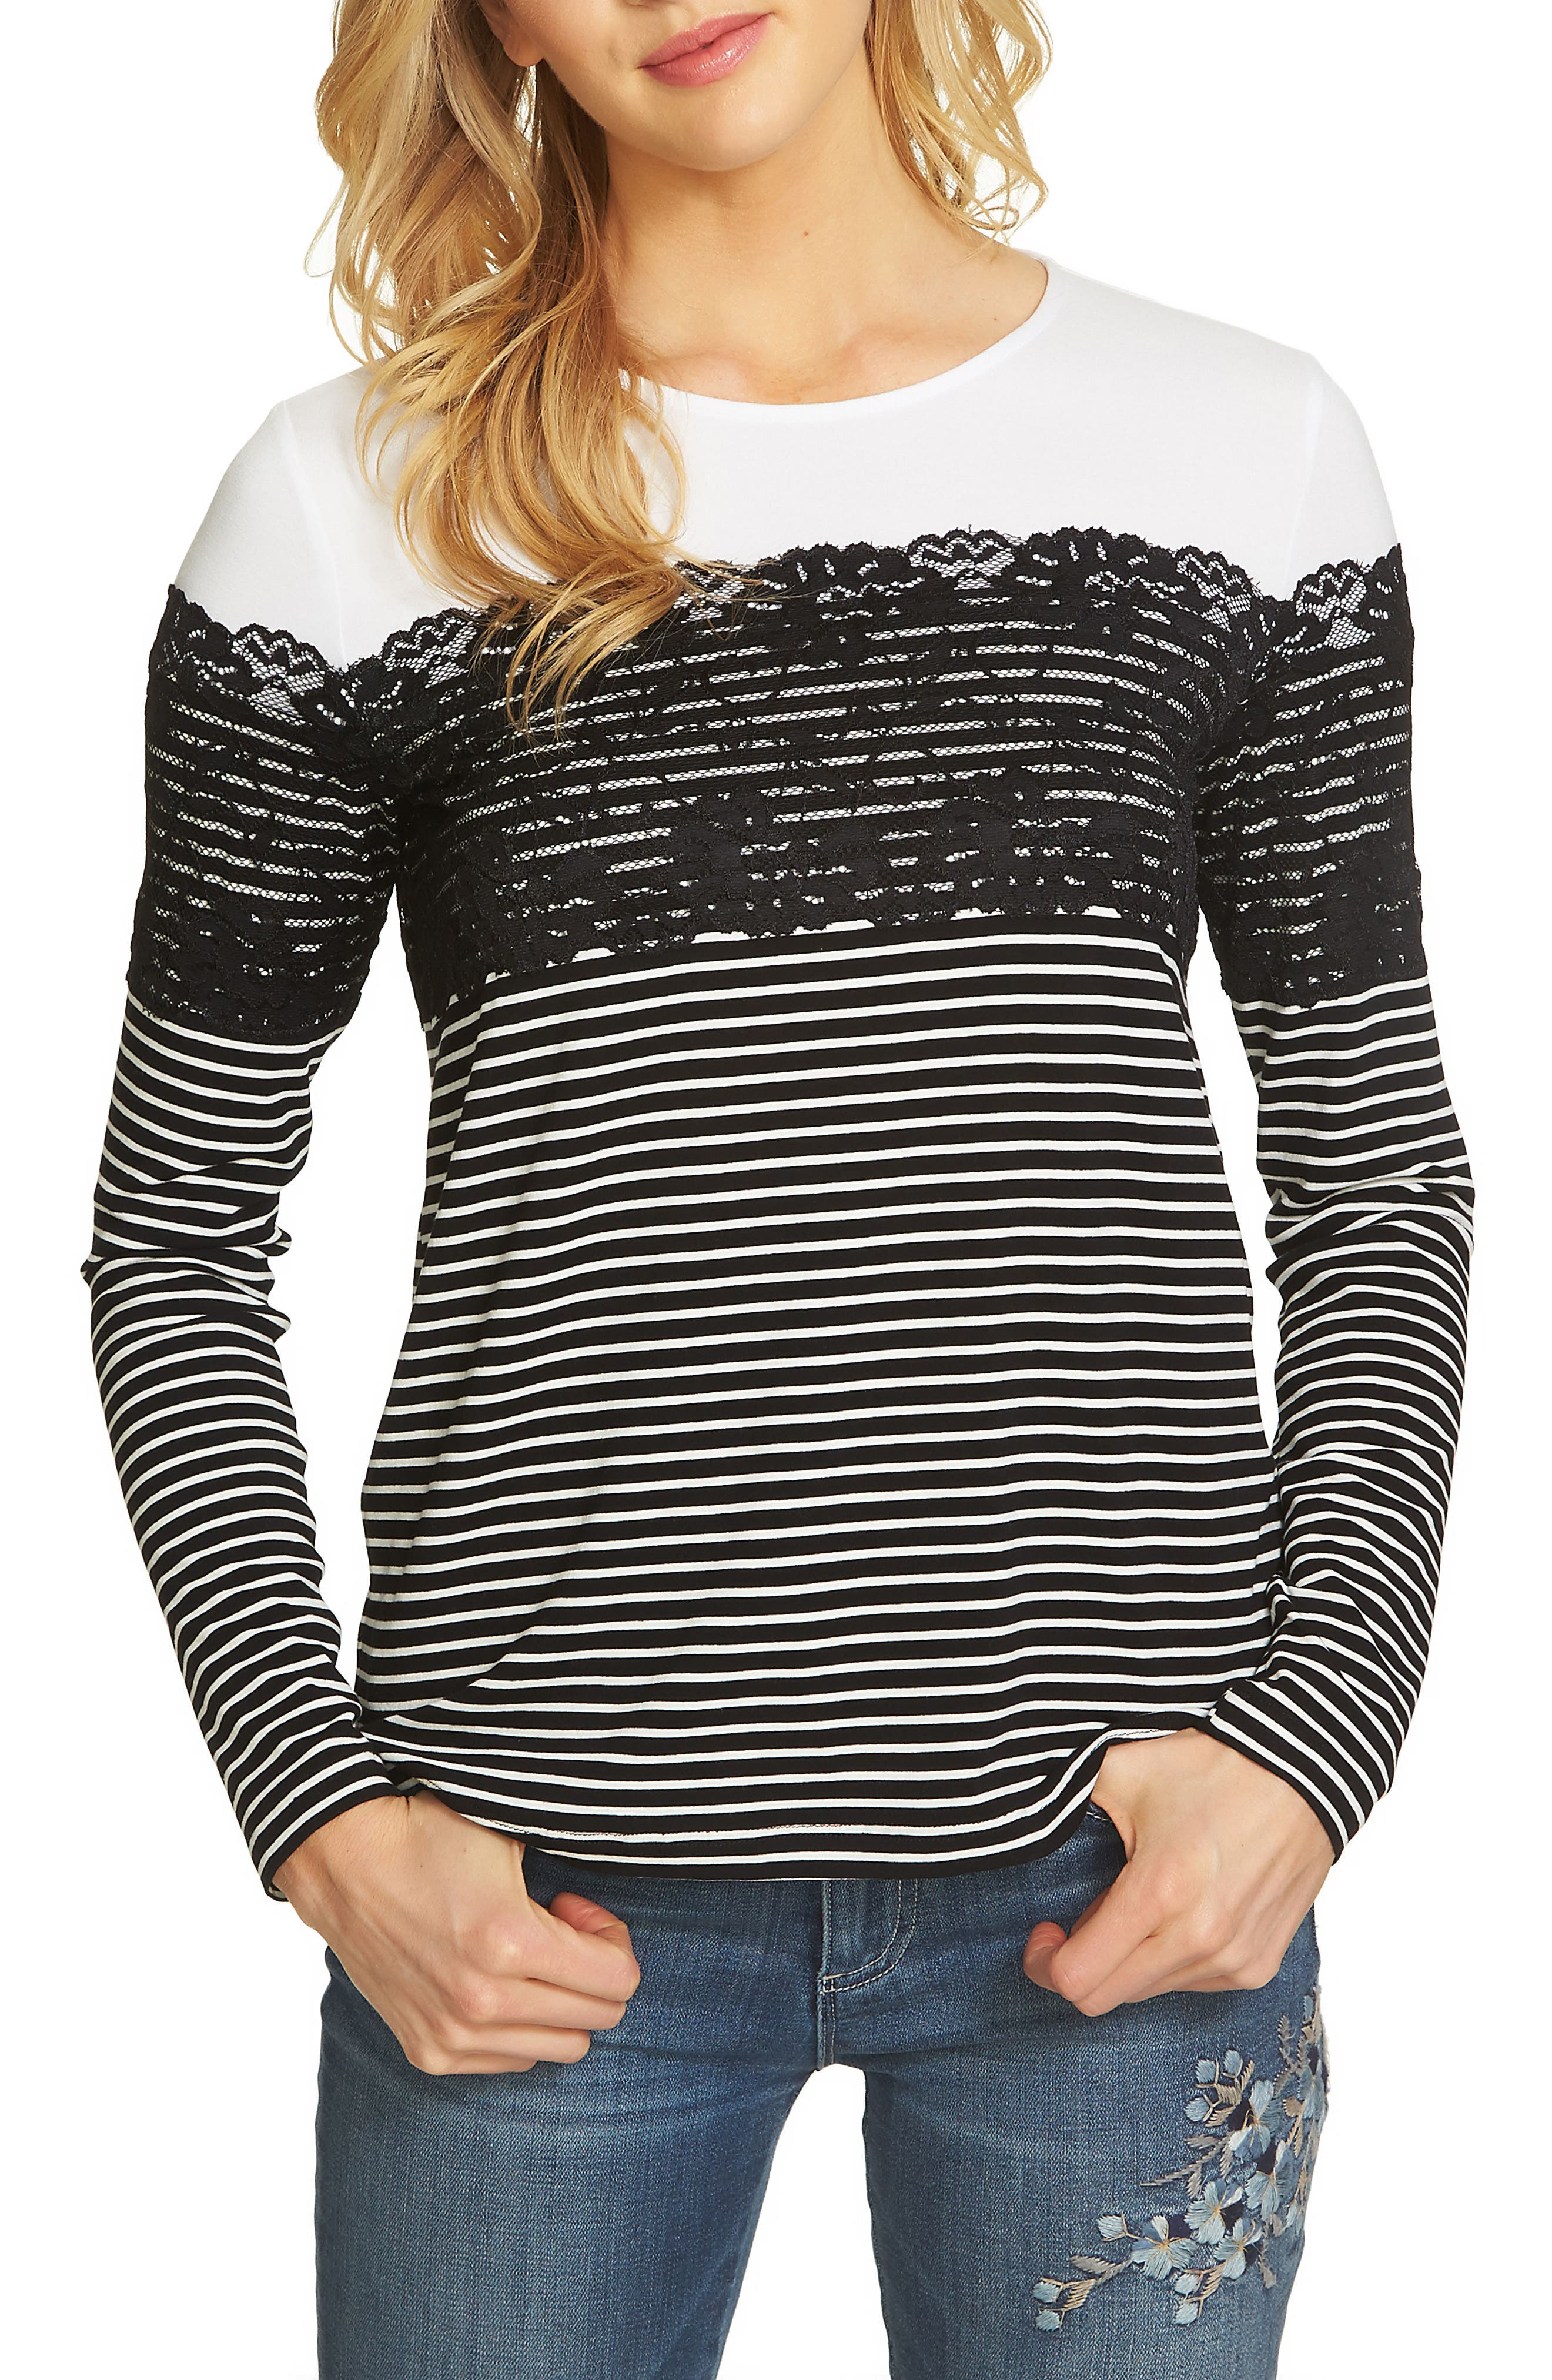 CeCe Lacy Striped Top